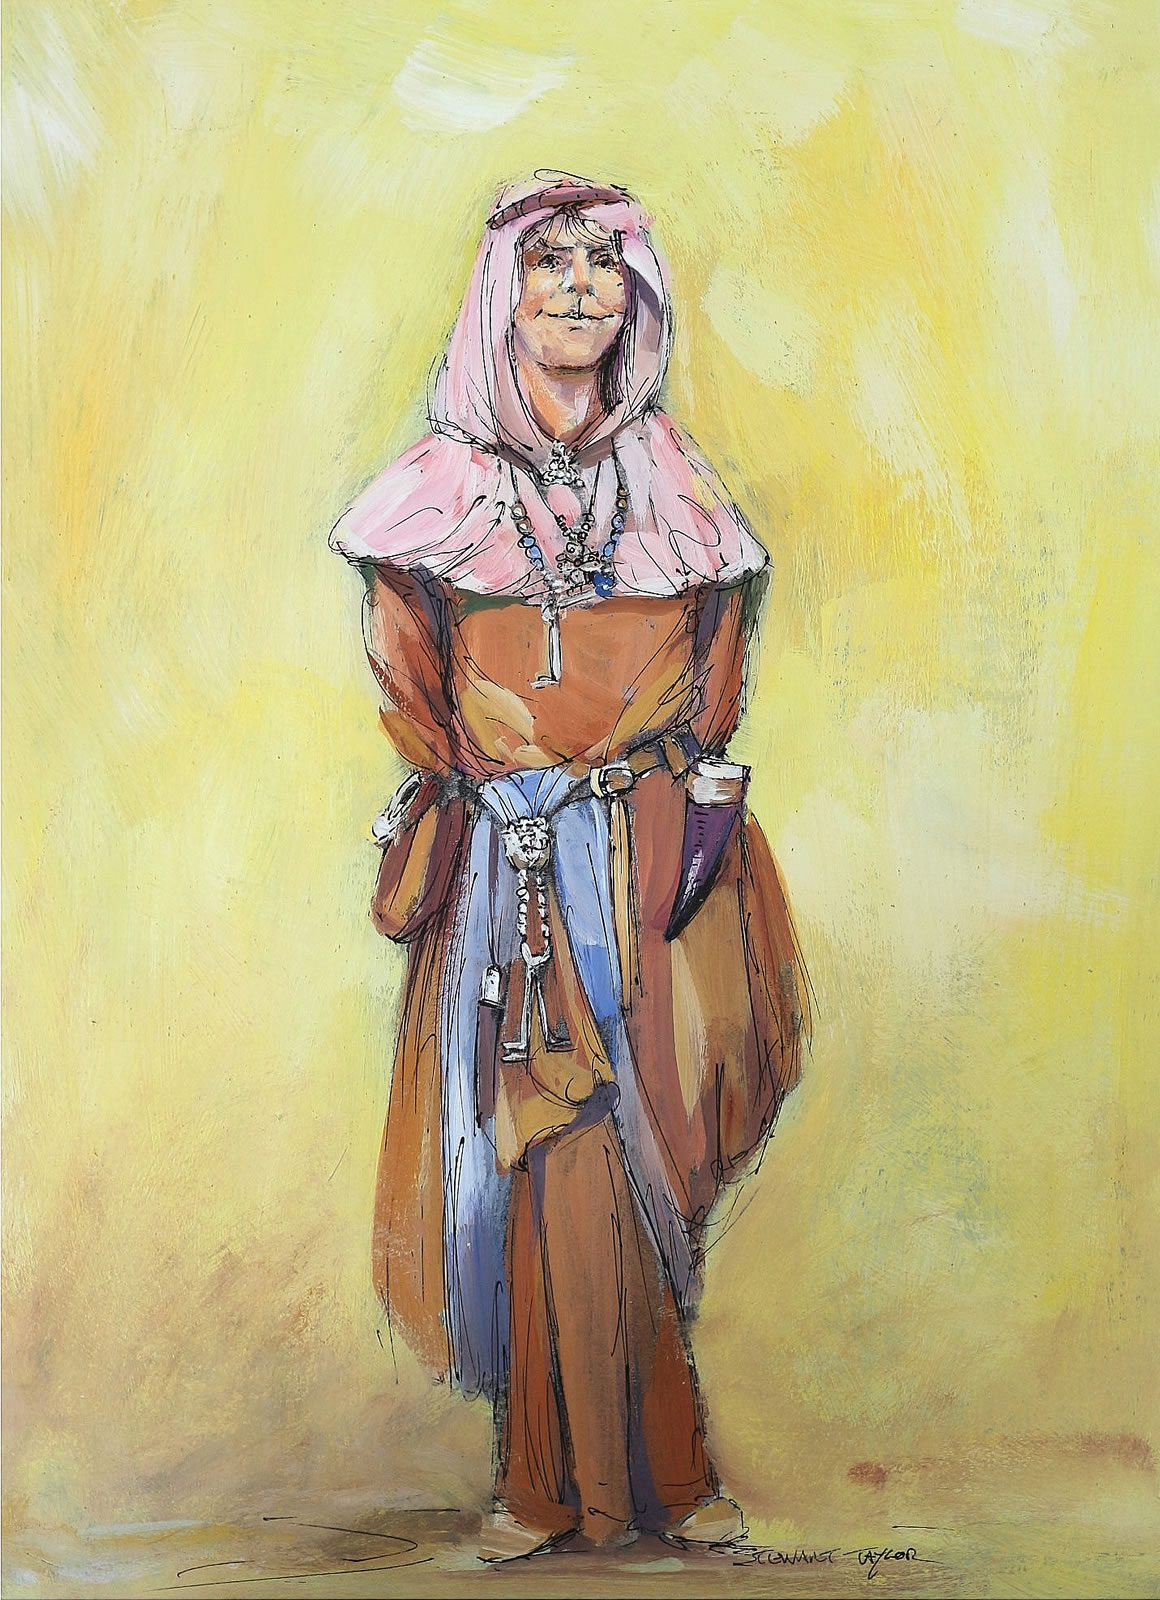 Character study in pen and oils by Stewart Taylor